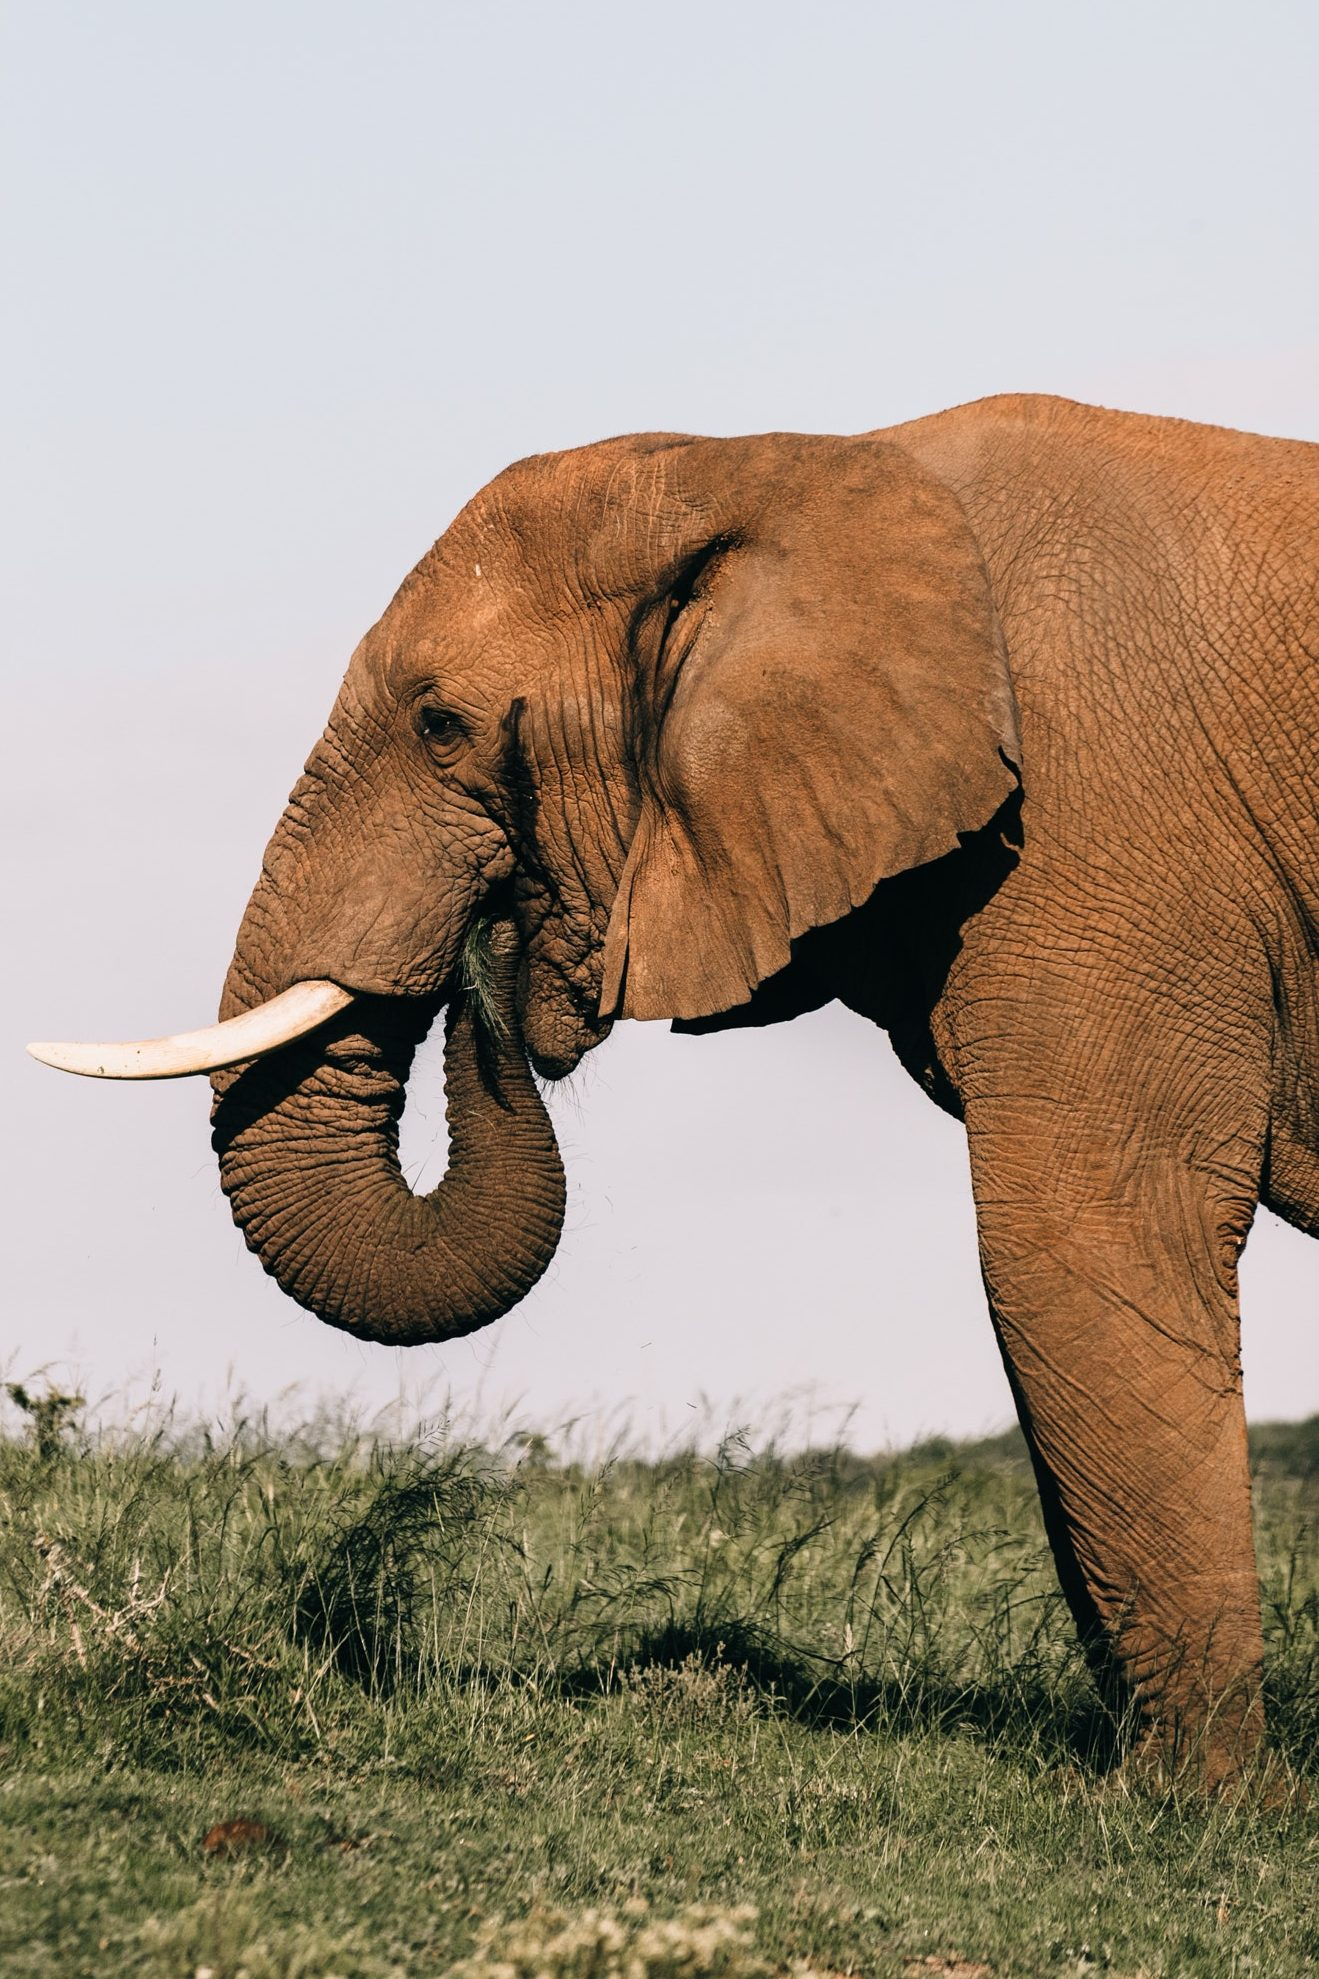 Elephant standing Firm